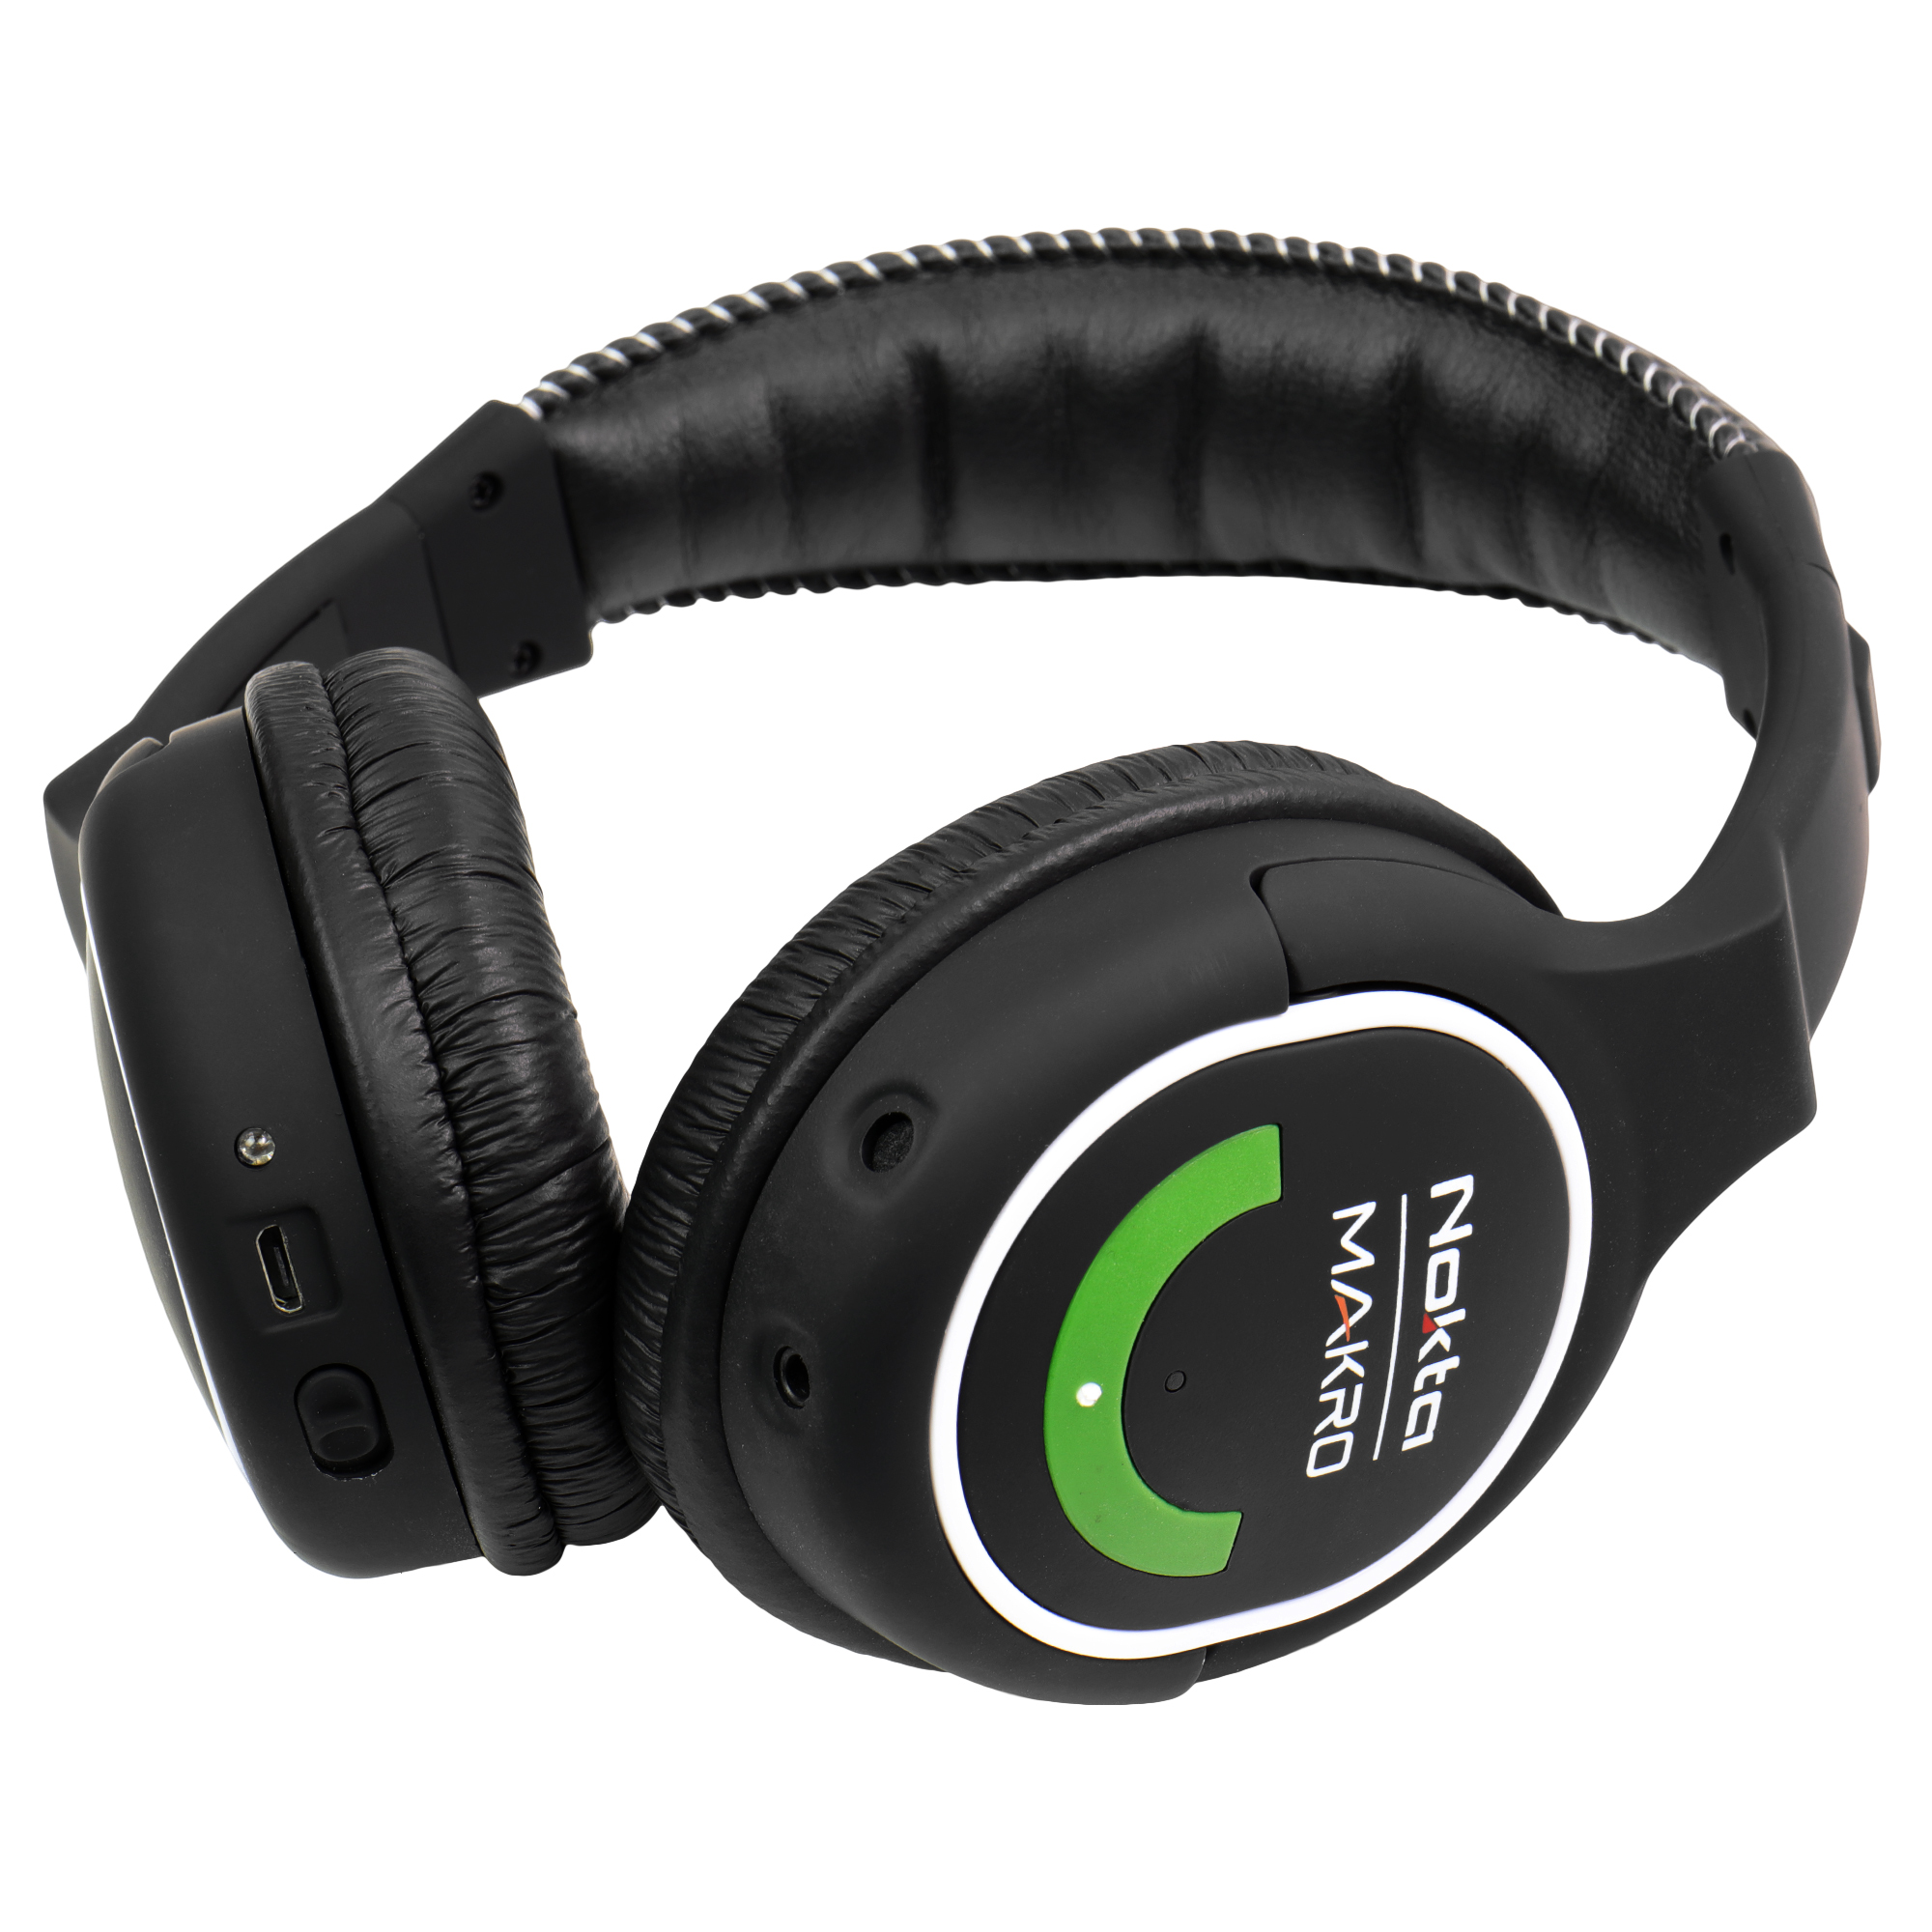 Nokta/Makro Green Edition Wireless Headphones